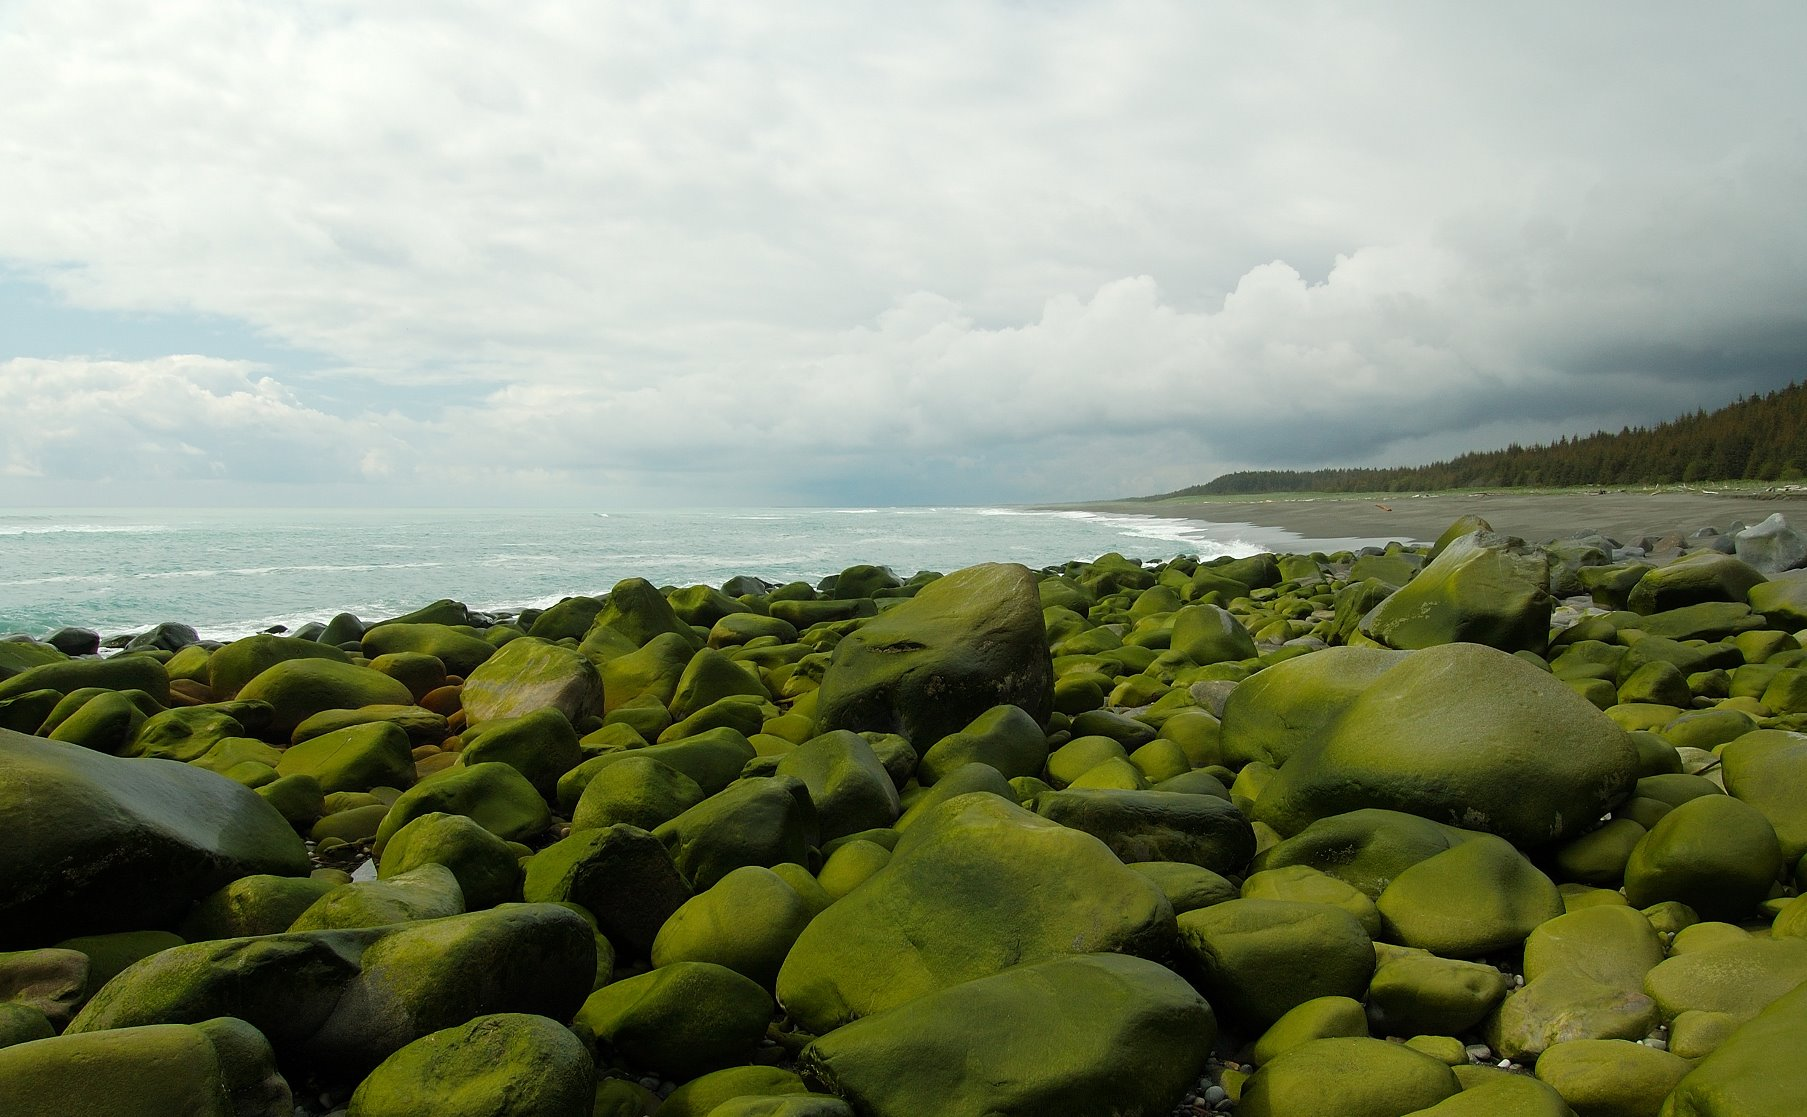 Algae covered glacial erratics on the outer coast.